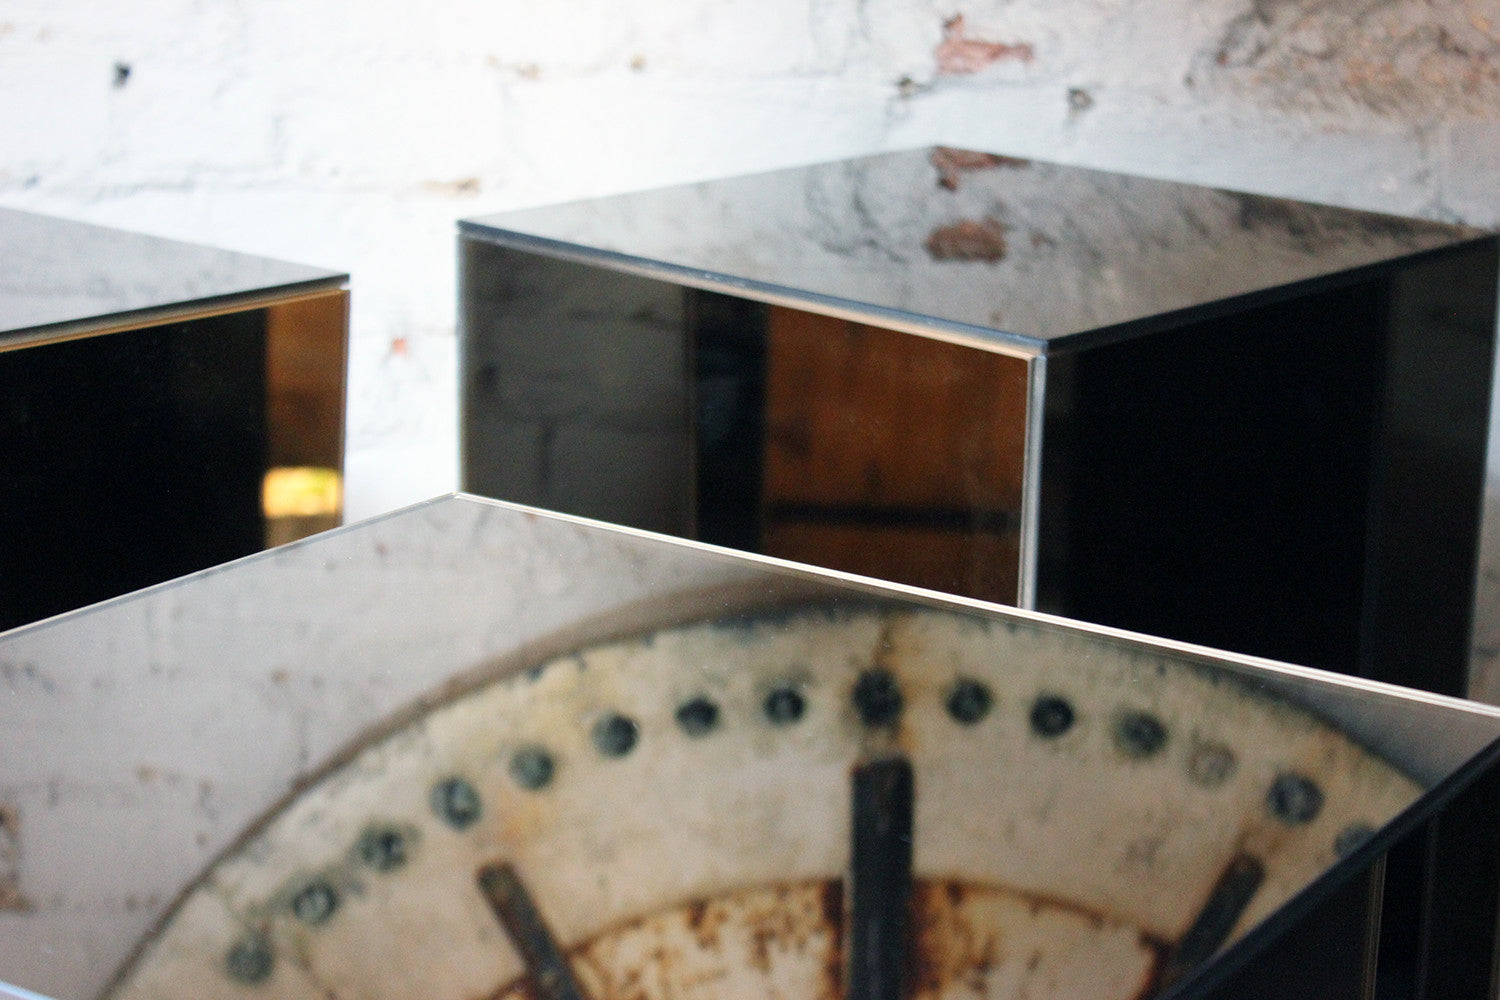 A Fantastic Group of Five Mirrored Pedestals c.1970-80